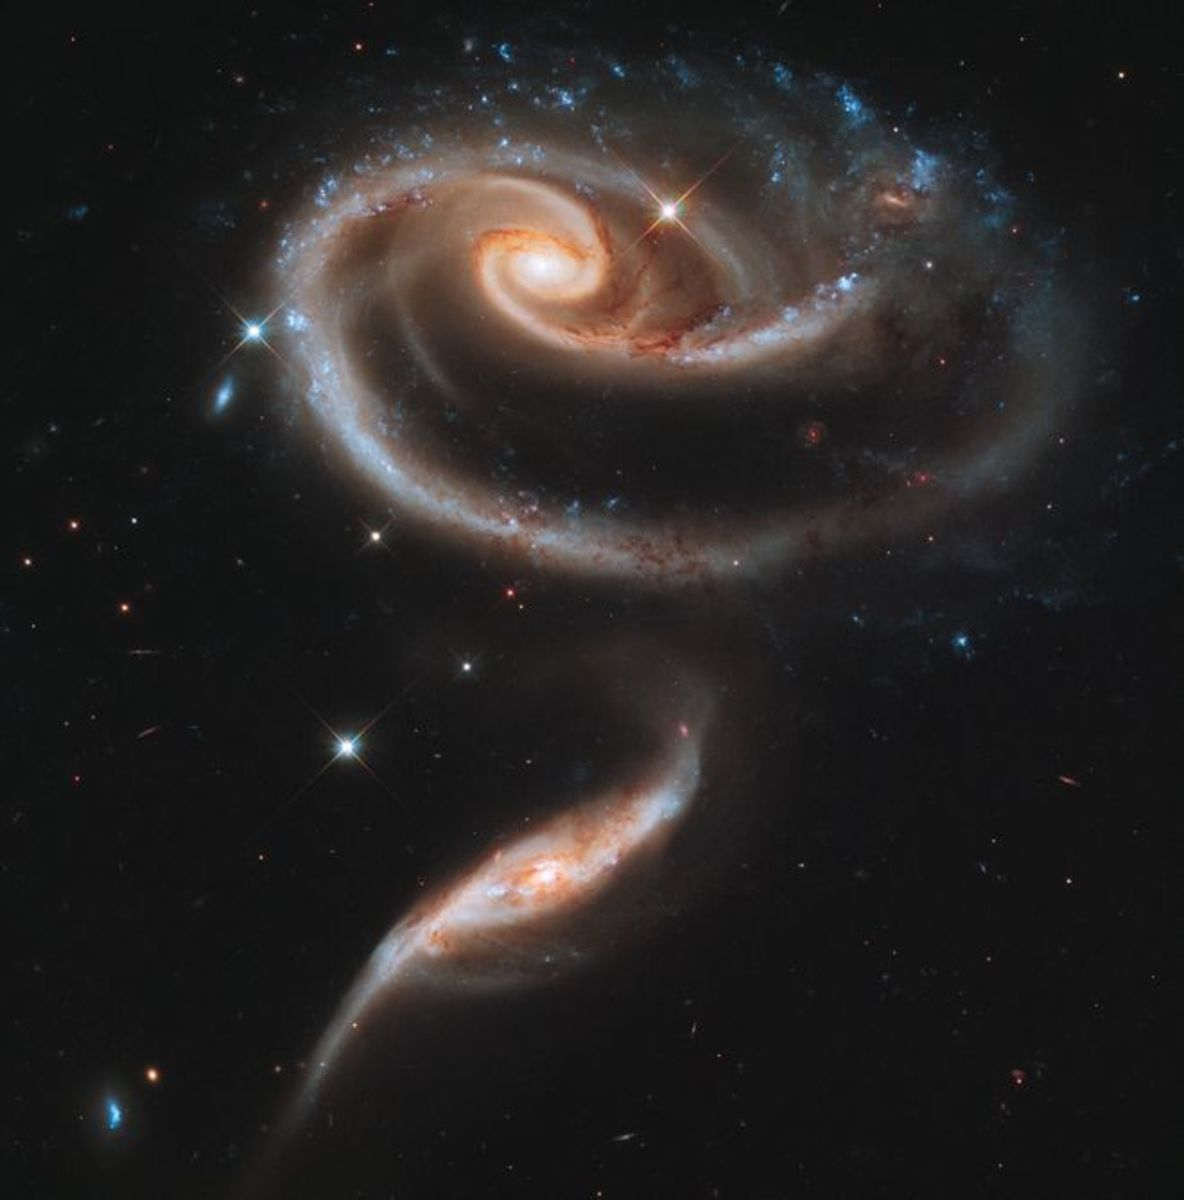 Galaxies UGC 1810 & 1813 form the rose-shaped Apr 273, icon of the 21st Anniversary of the Hubble Space Telescope deployment: 04/24/1990.